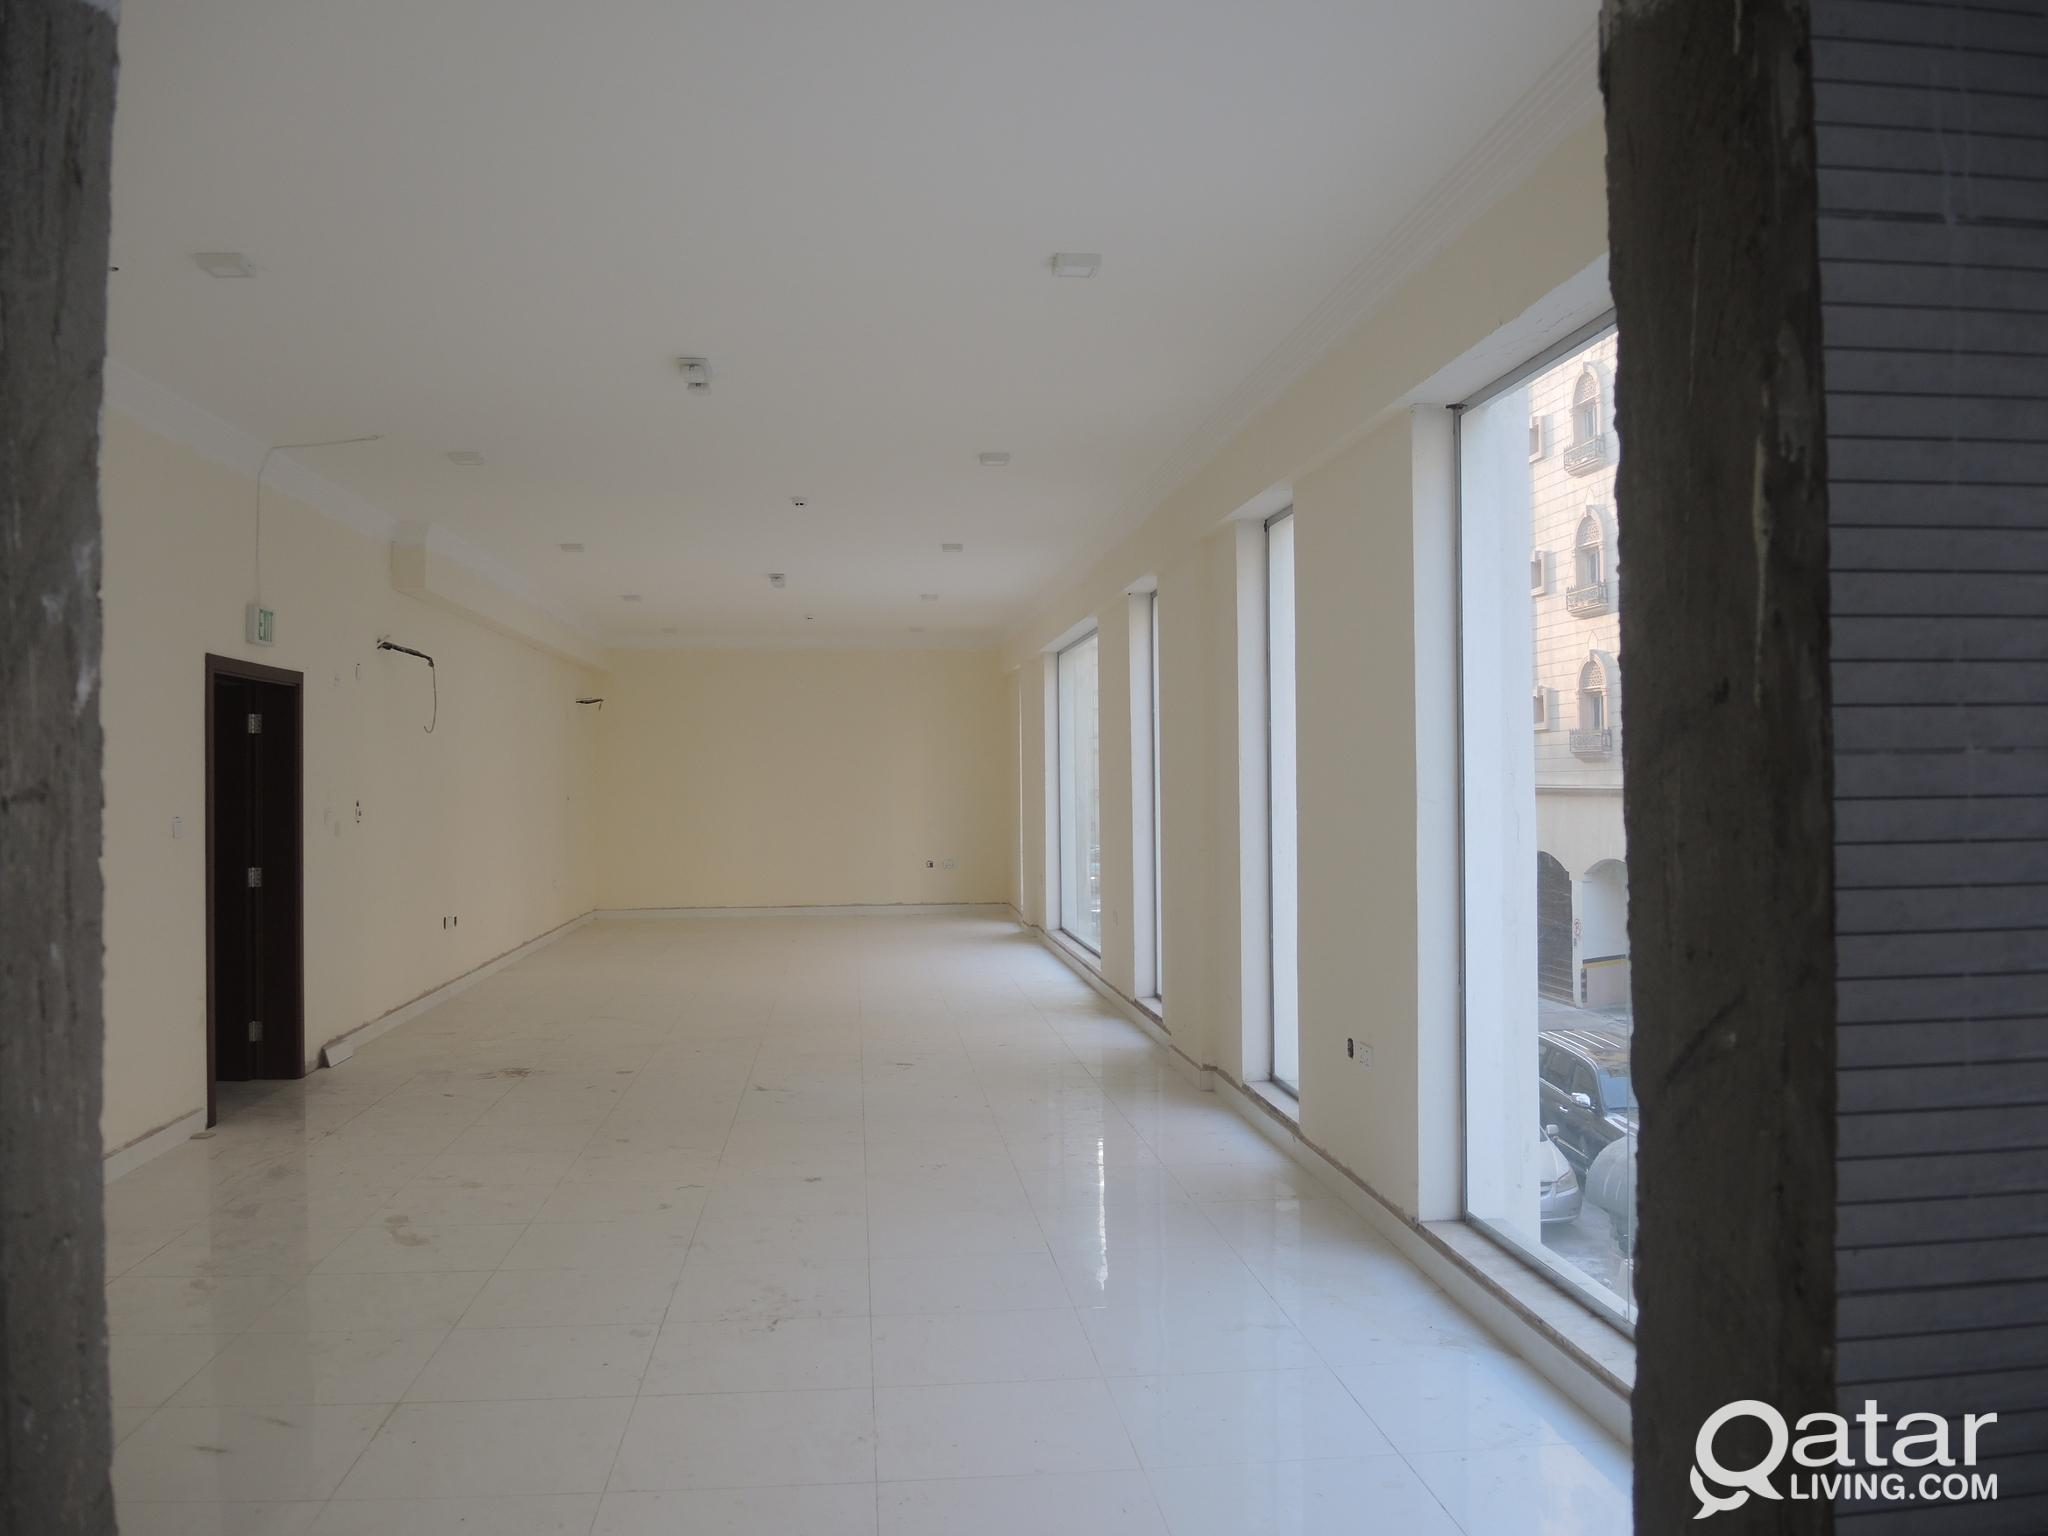 OFFICE SPACES AVAILABLE IN AL MANSOURA